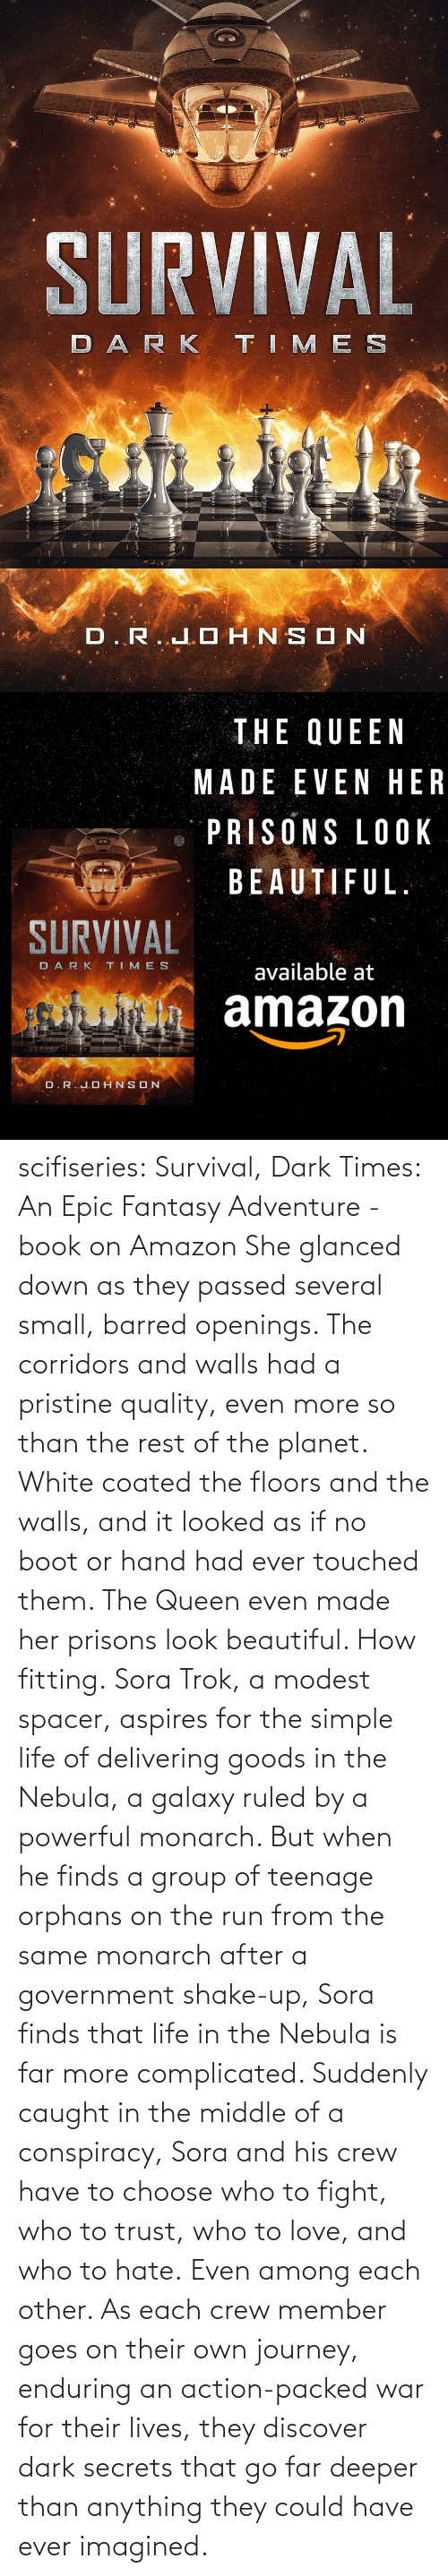 White: scifiseries: Survival, Dark Times: An Epic Fantasy Adventure - book on Amazon  She glanced down as they  passed several small, barred openings. The corridors and walls had a  pristine quality, even more so than the rest of the planet. White coated  the floors and the walls, and it looked as if no boot or hand had ever  touched them.  The Queen even made her prisons look beautiful.  How fitting. Sora  Trok, a modest spacer, aspires for the simple life of delivering goods  in the Nebula, a galaxy ruled by a powerful monarch. But when he finds a  group of teenage orphans on the run from the same monarch after a  government shake-up, Sora finds that life in the Nebula is far more complicated.  Suddenly  caught in the middle of a conspiracy, Sora and his crew have to choose  who to fight, who to trust, who to love, and who to hate. Even among each other.  As  each crew member goes on their own journey, enduring an action-packed  war for their lives, they discover dark secrets that go far deeper than  anything they could have ever imagined.